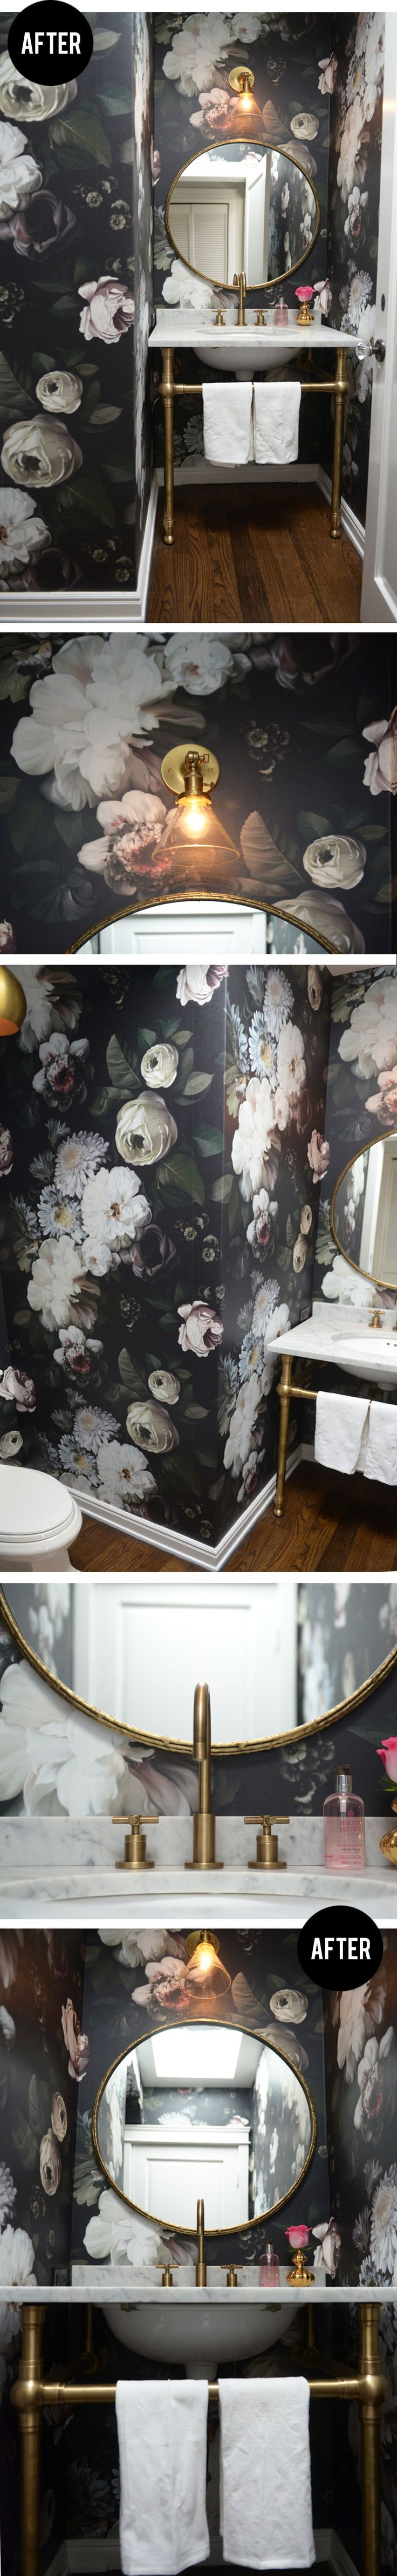 This floral wallpaper is farm from frou frou! Perfect for a bachelor pad or gal lair!  Project: Cupcakes { powder bath } bathroom